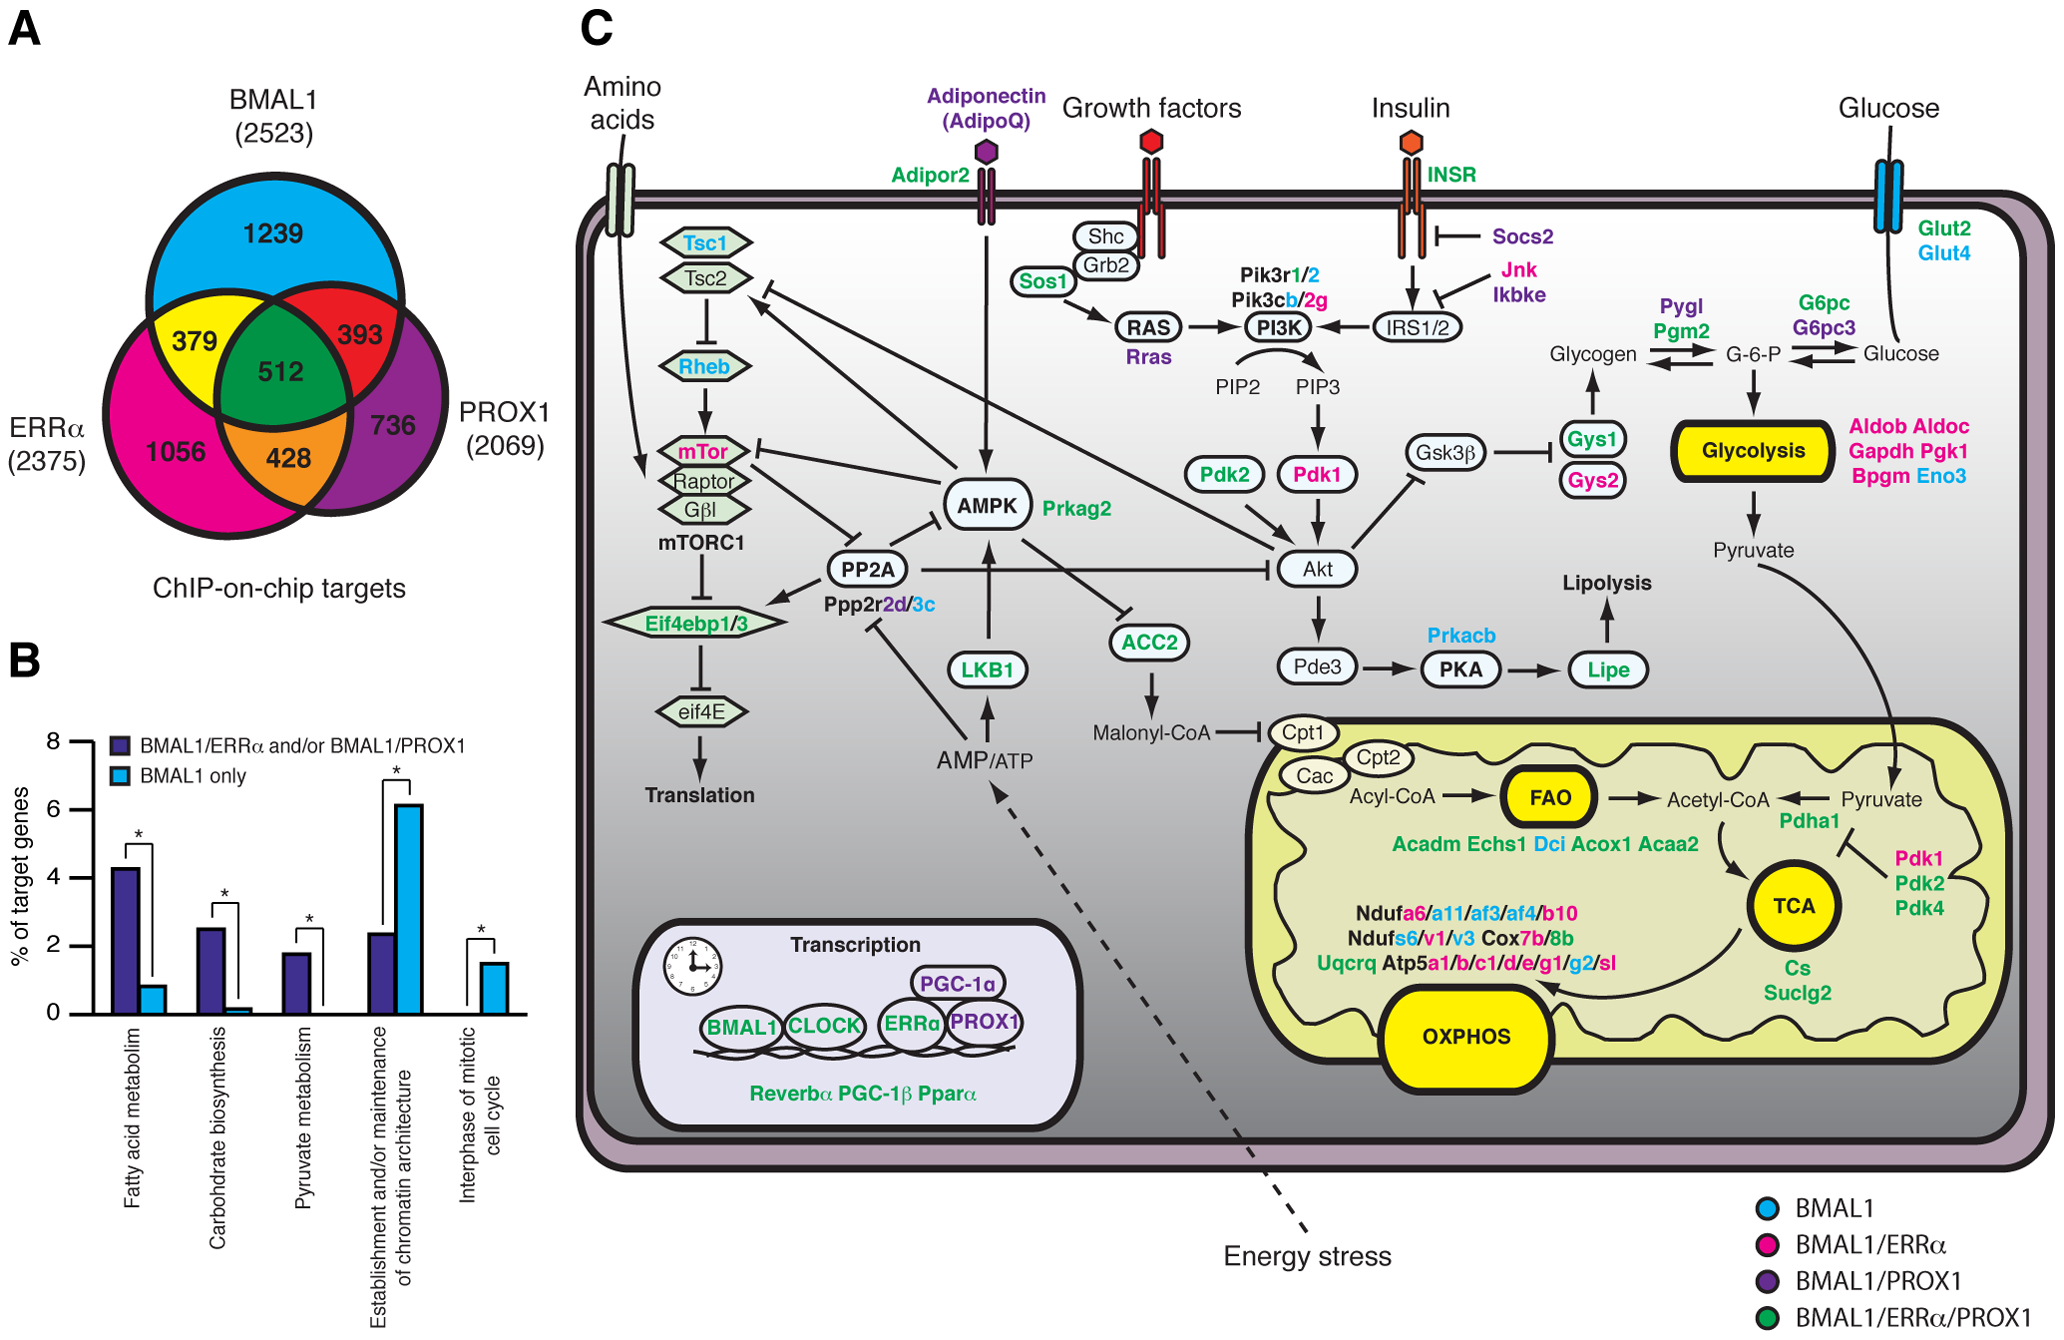 ERRα, PROX1, and BMAL1 genomic convergence linking the clock with metabolism.